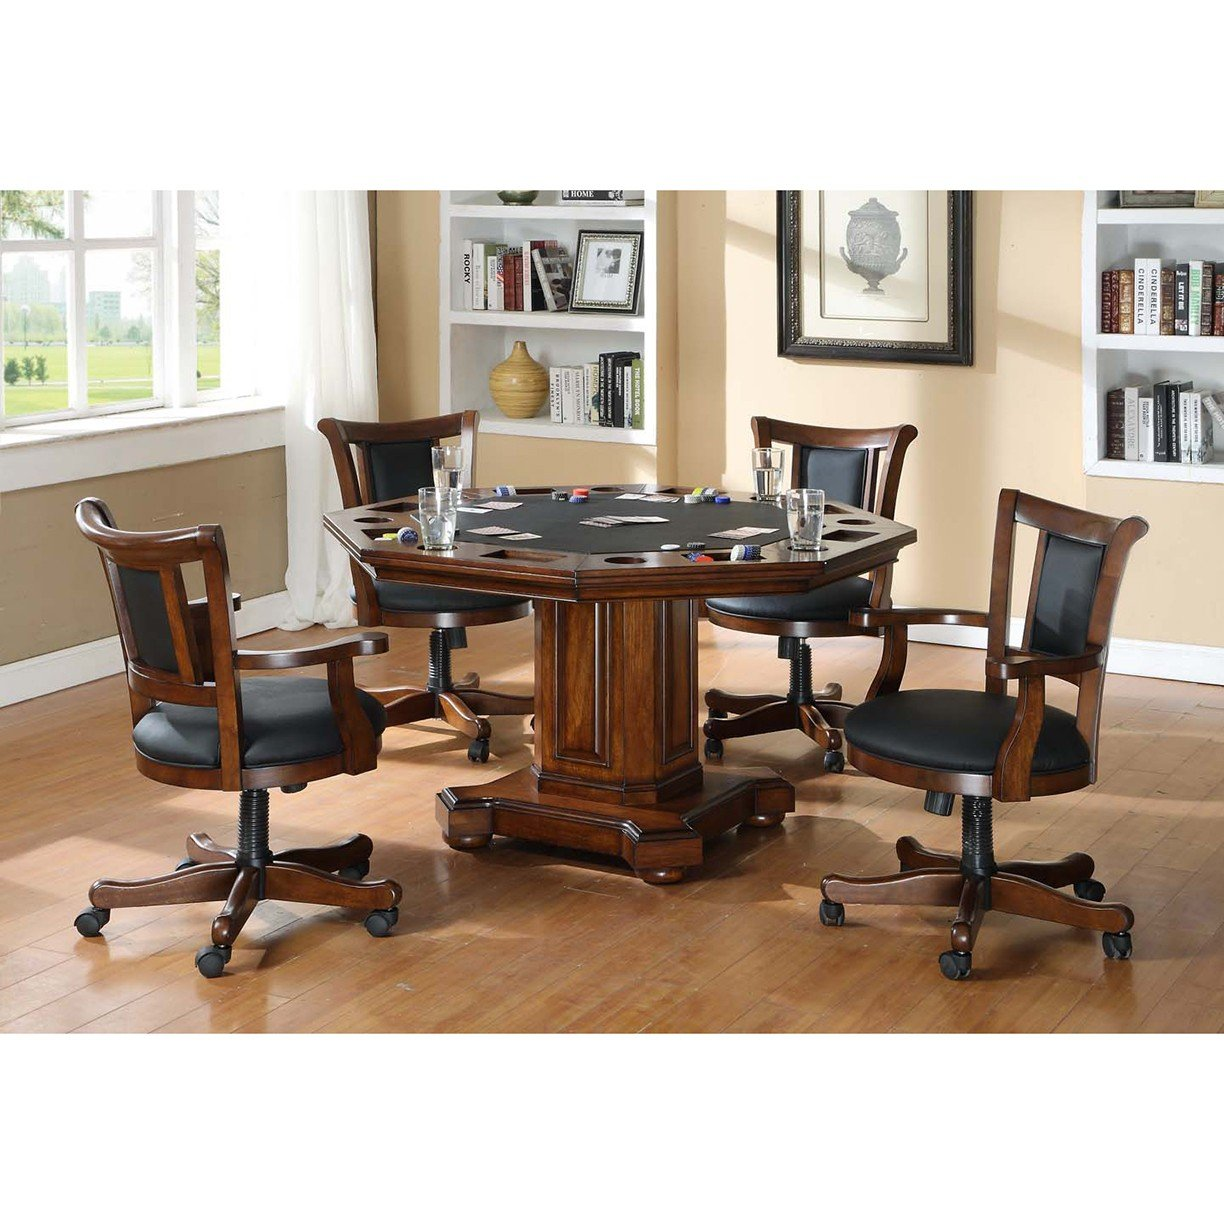 Table Easily Converts From Dining To Poker Top U2022 52 In. Octagonal Top U2022  Poker Top Features Felt Playing Surface, Chip Holders And Cork Cup Holders